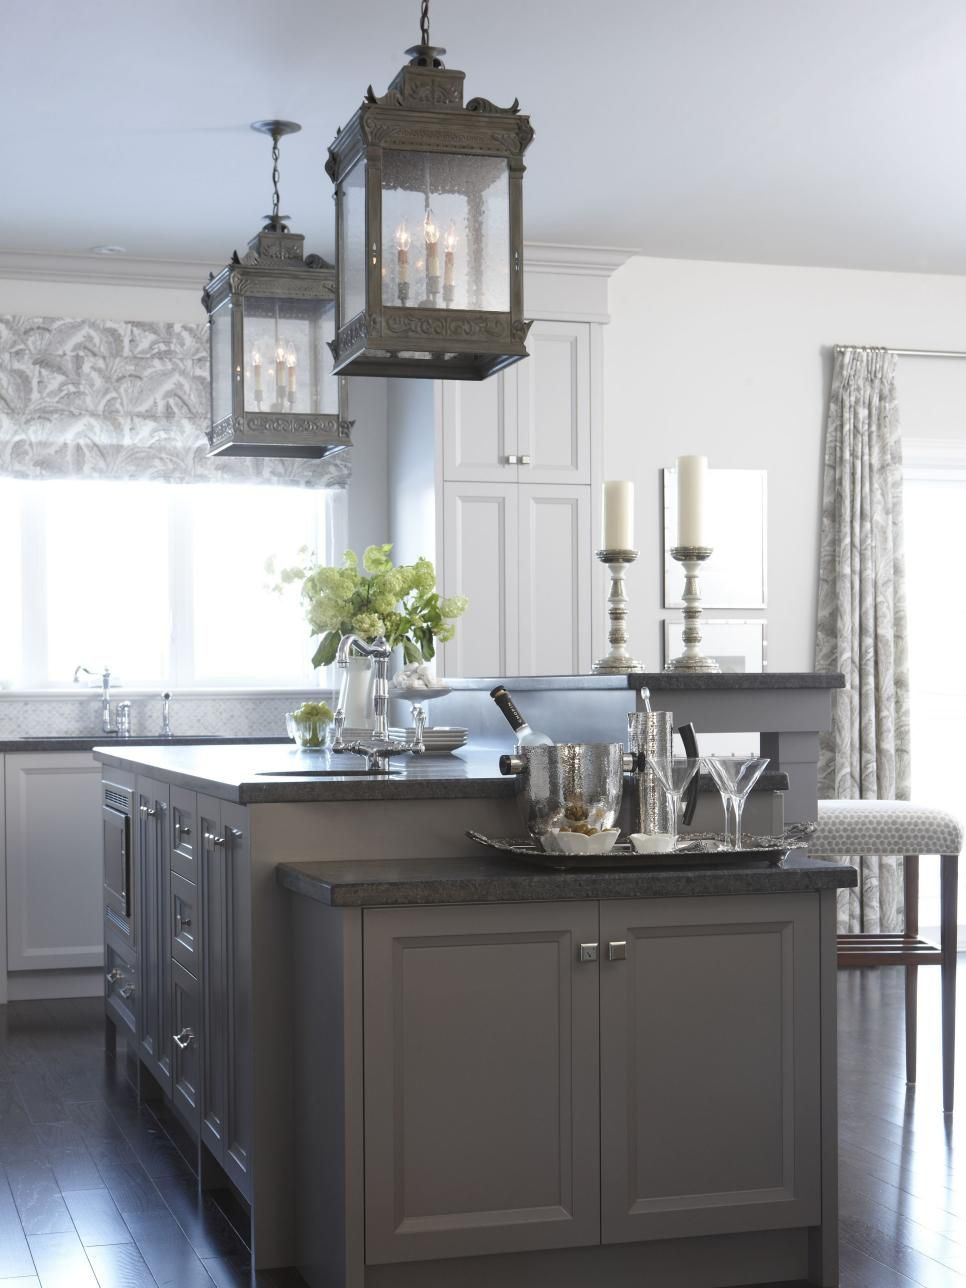 Explore HGTVu0027s beautiful pictures of kitchen island